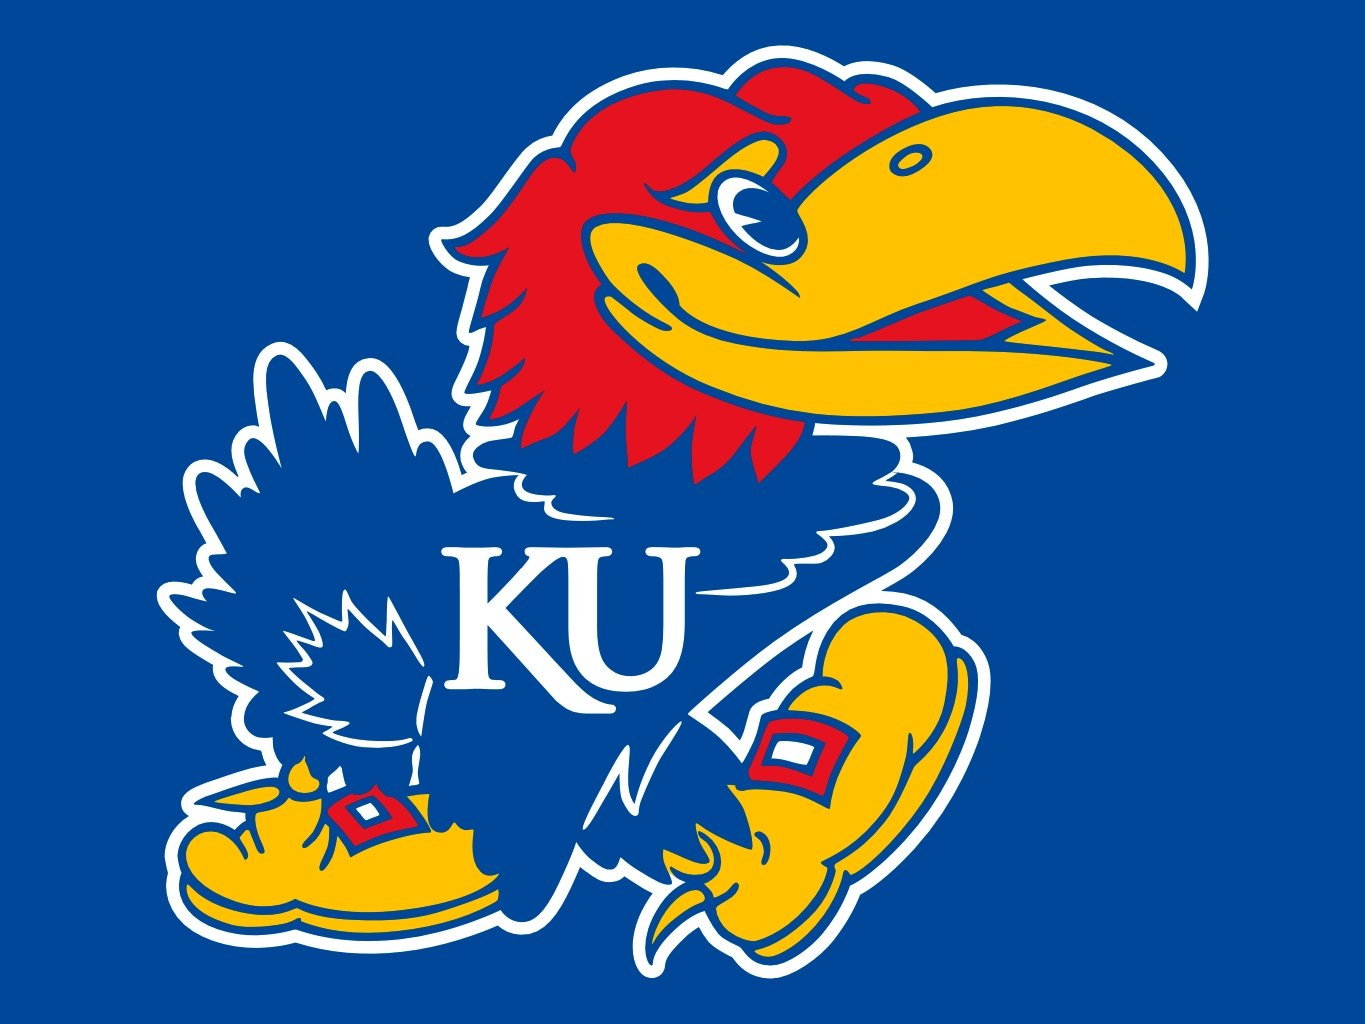 The Kansas Jayhawk